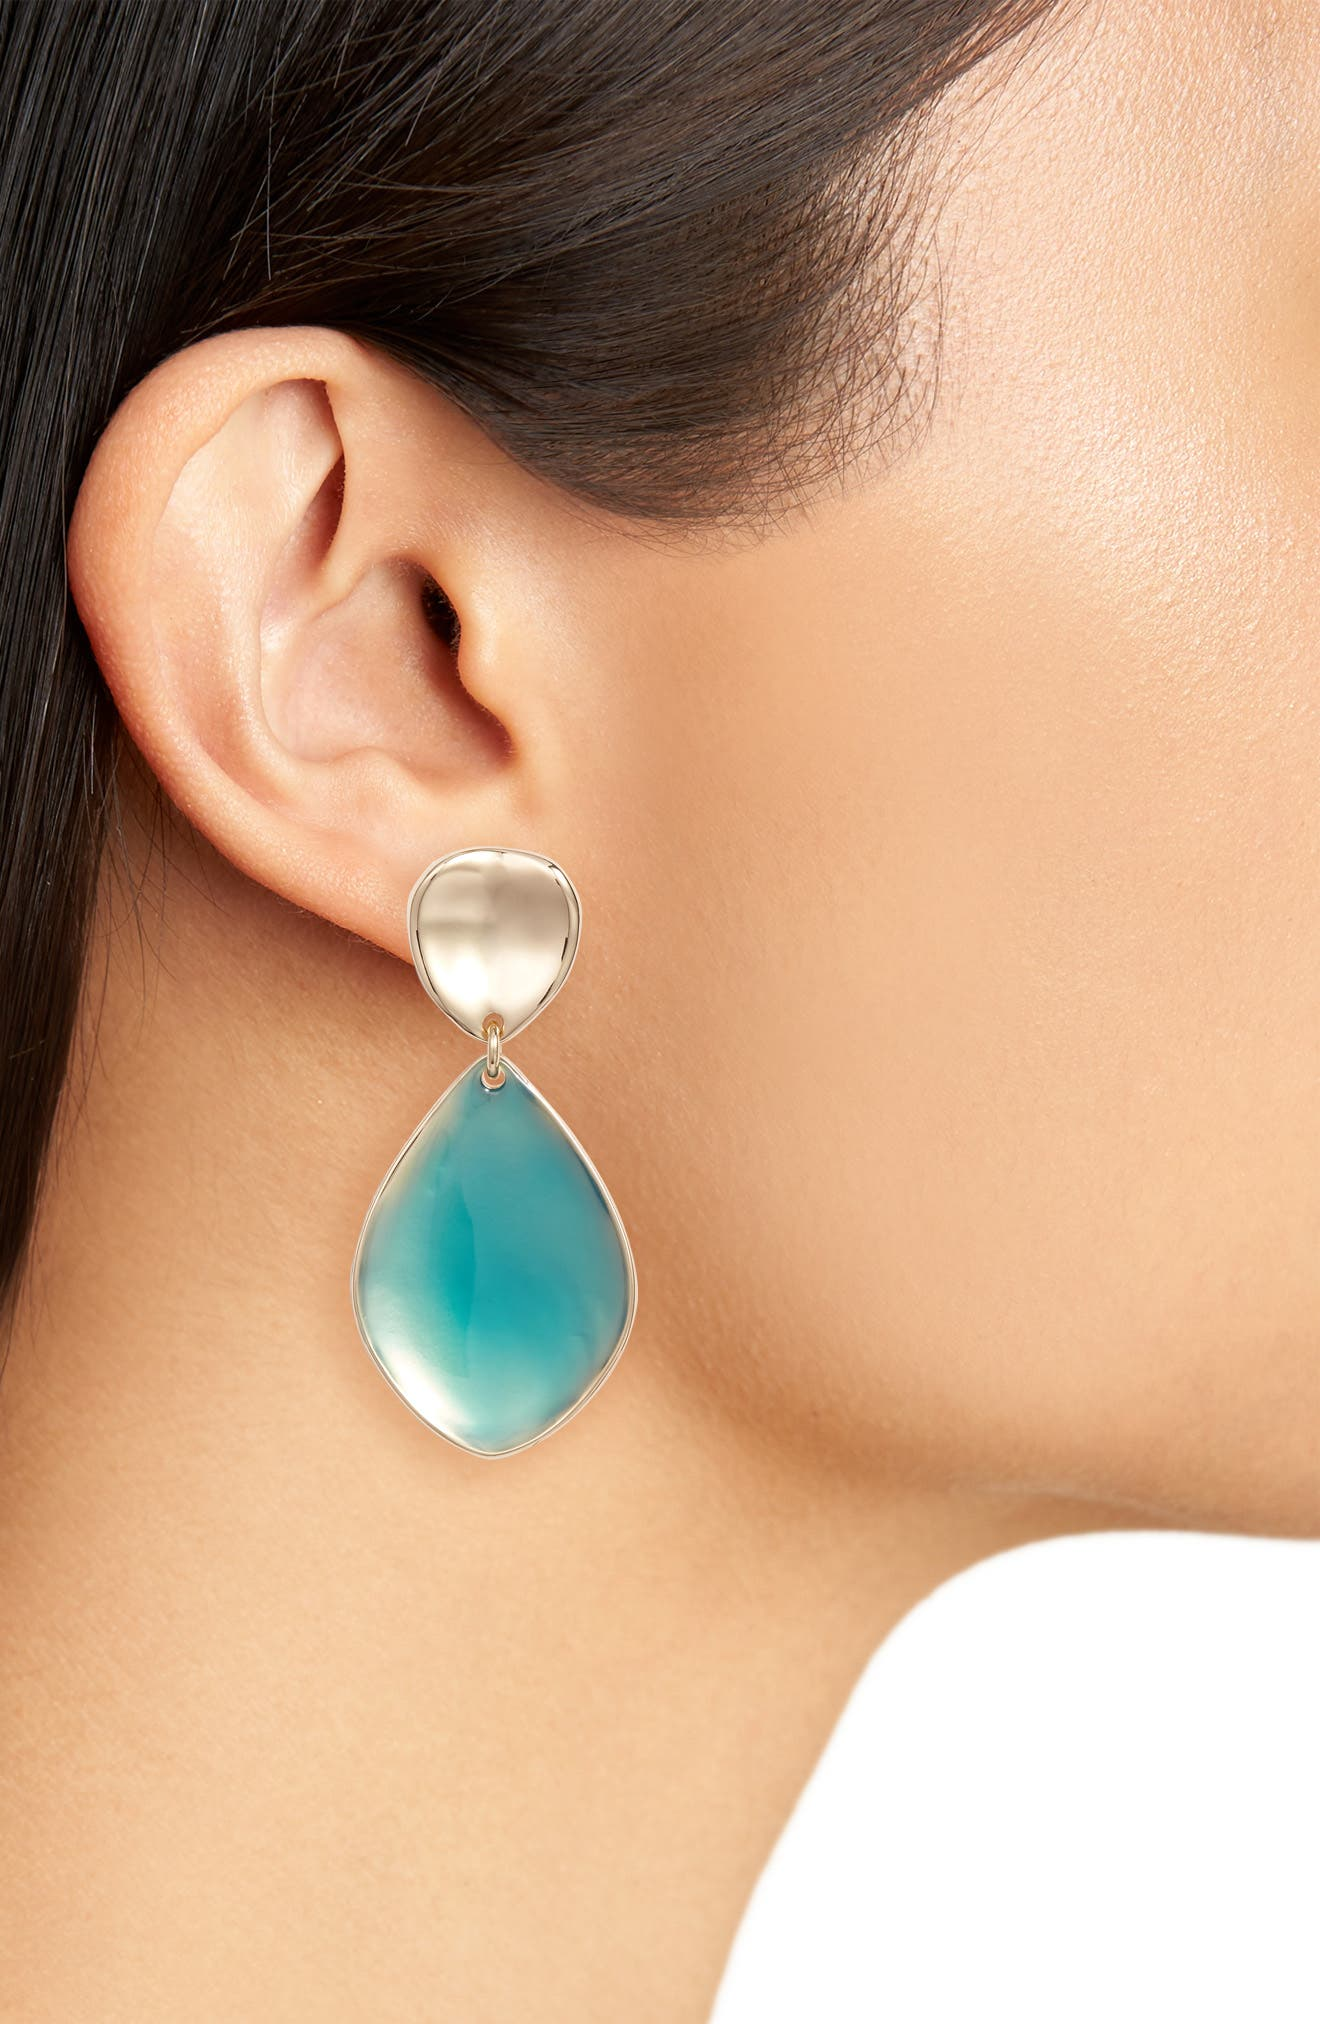 Painted Petal Double Drop Earrings,                             Alternate thumbnail 2, color,                             Teal- Gold